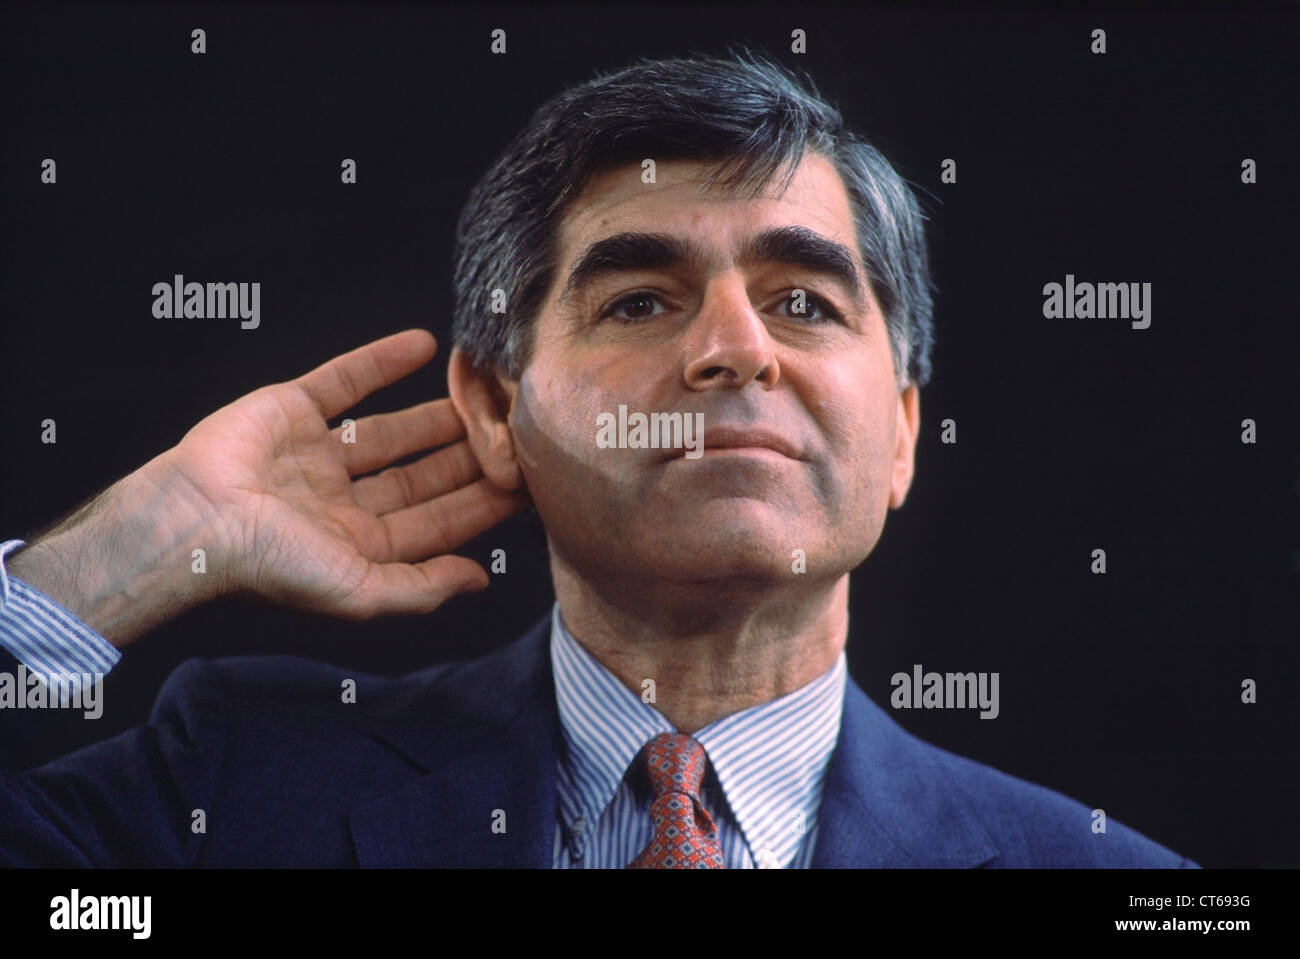 1988 Democratic Presidential candidate Michael Dukakis takes a question during a campaign stop in Silicon Valley, - Stock Image